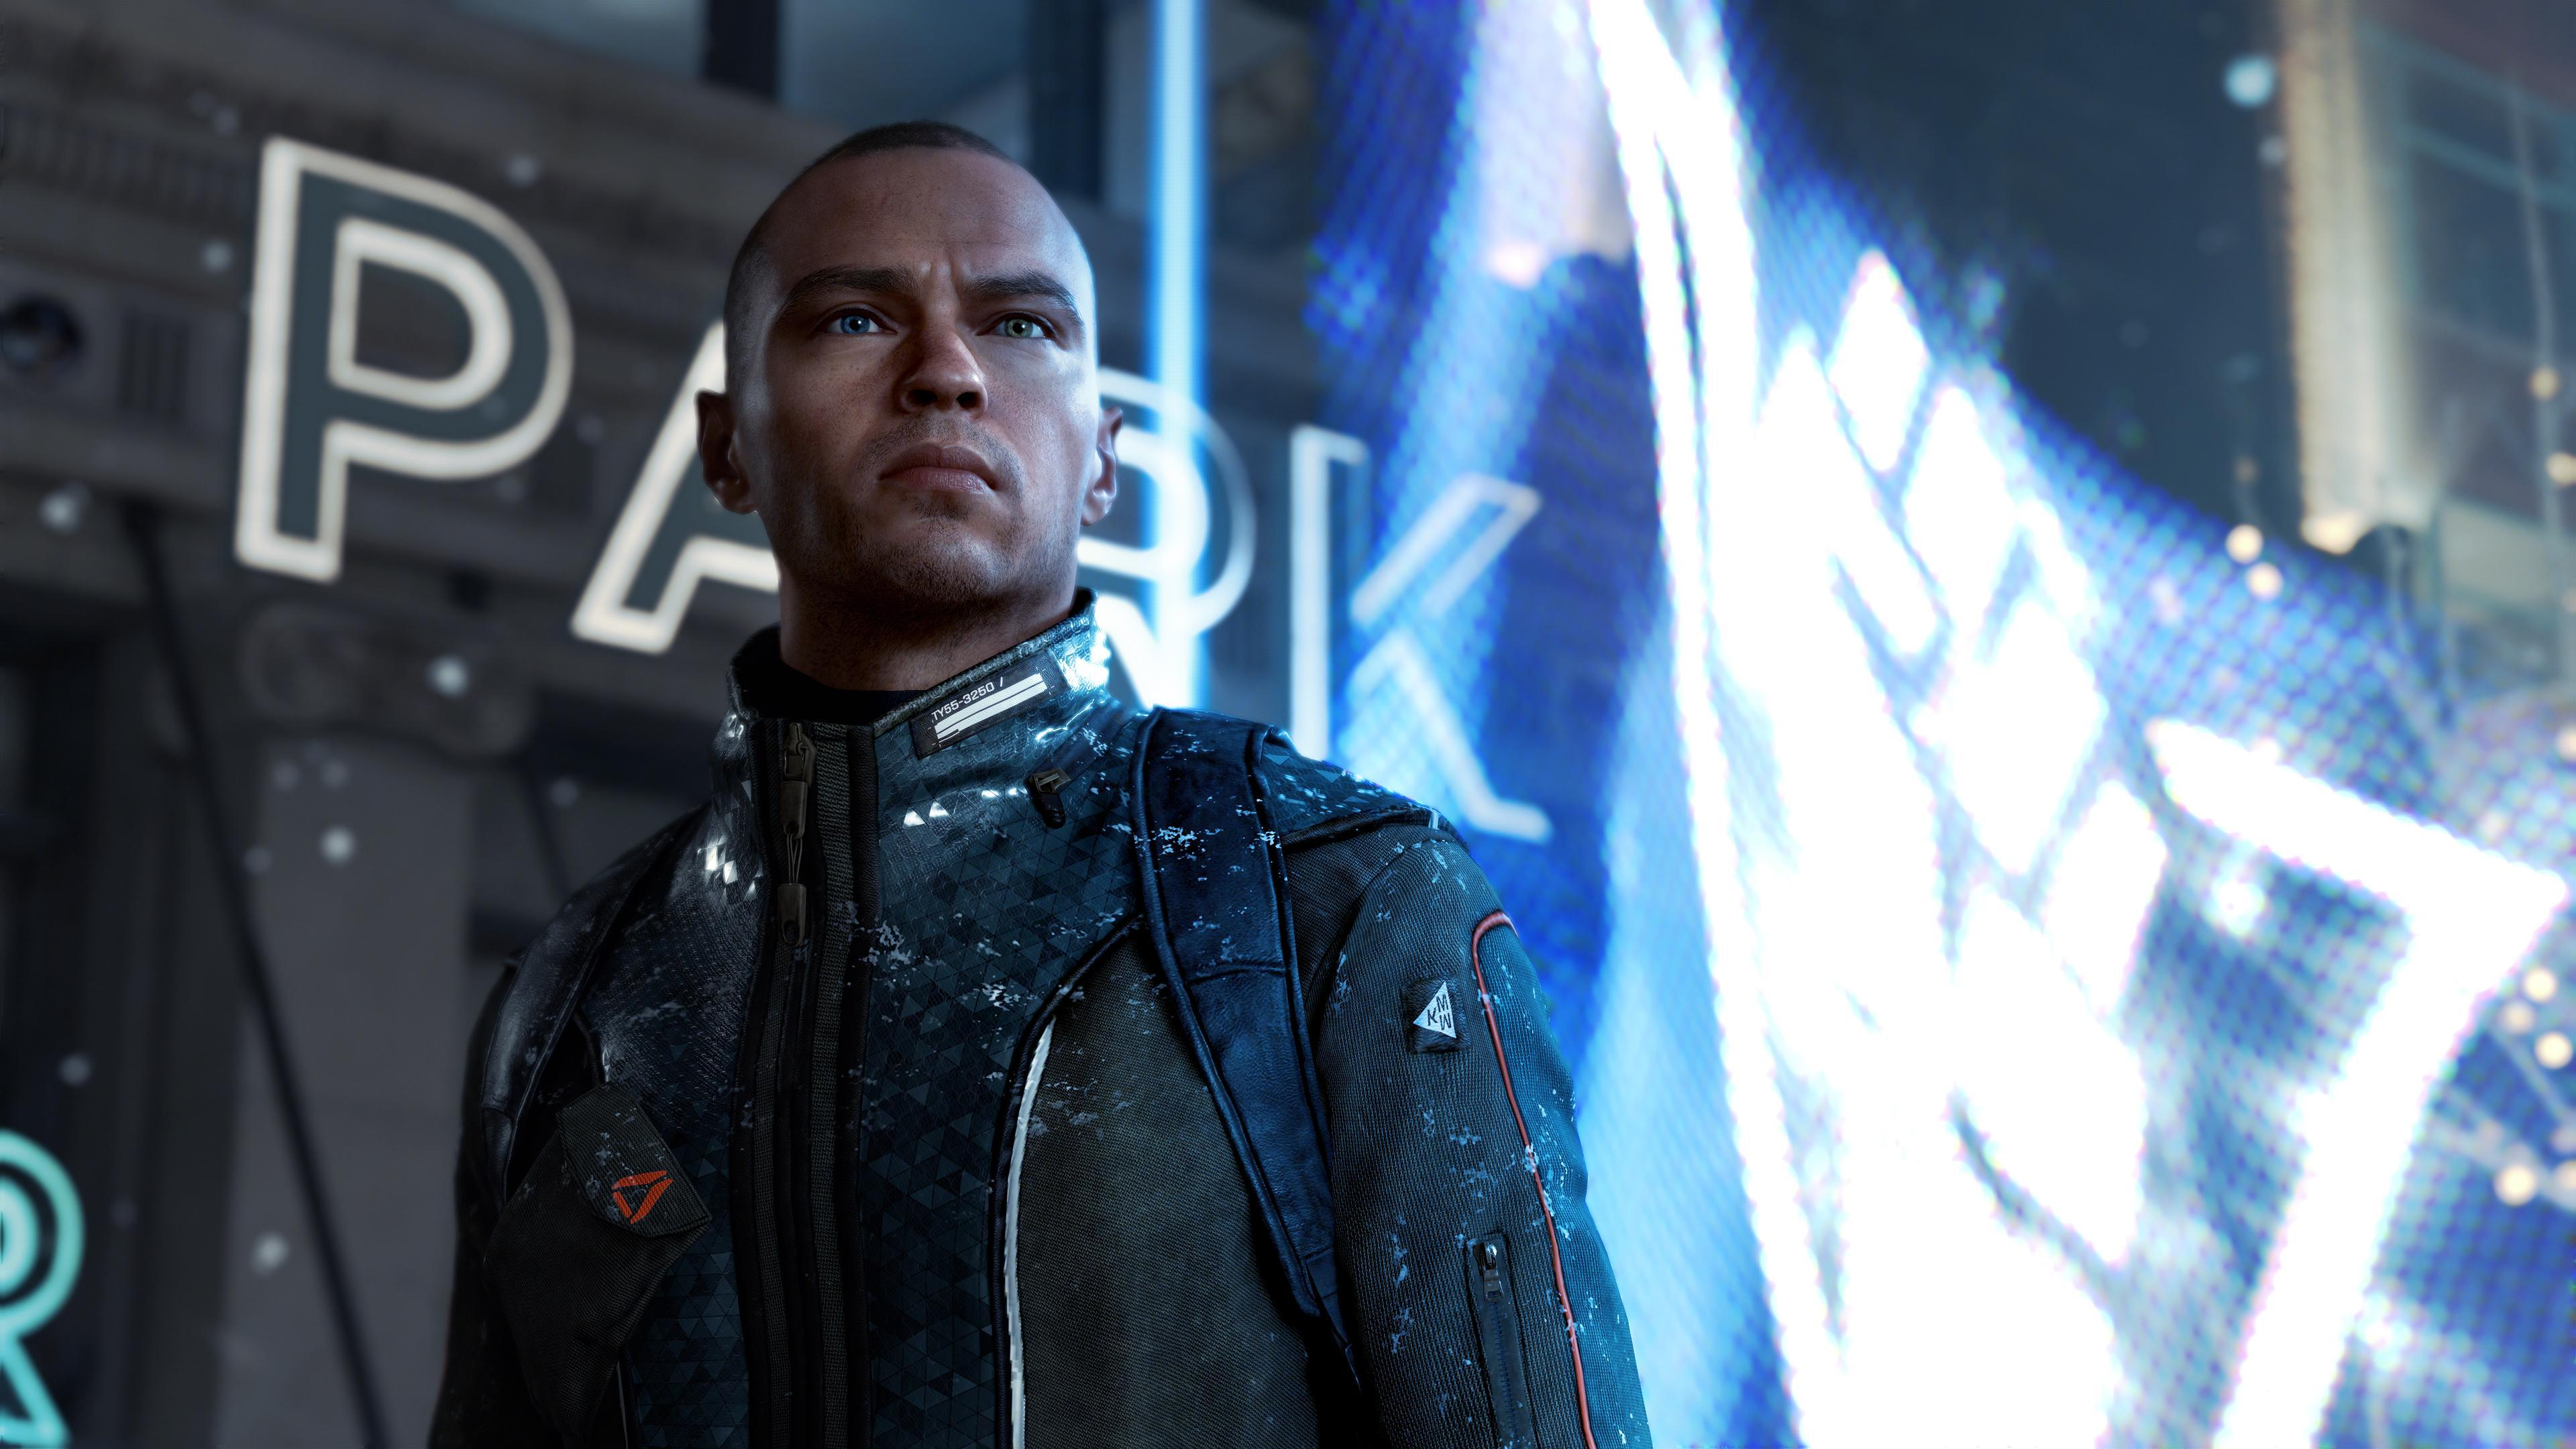 Markus Detroit Become Human 4k, HD Games, 4k Wallpapers, Image